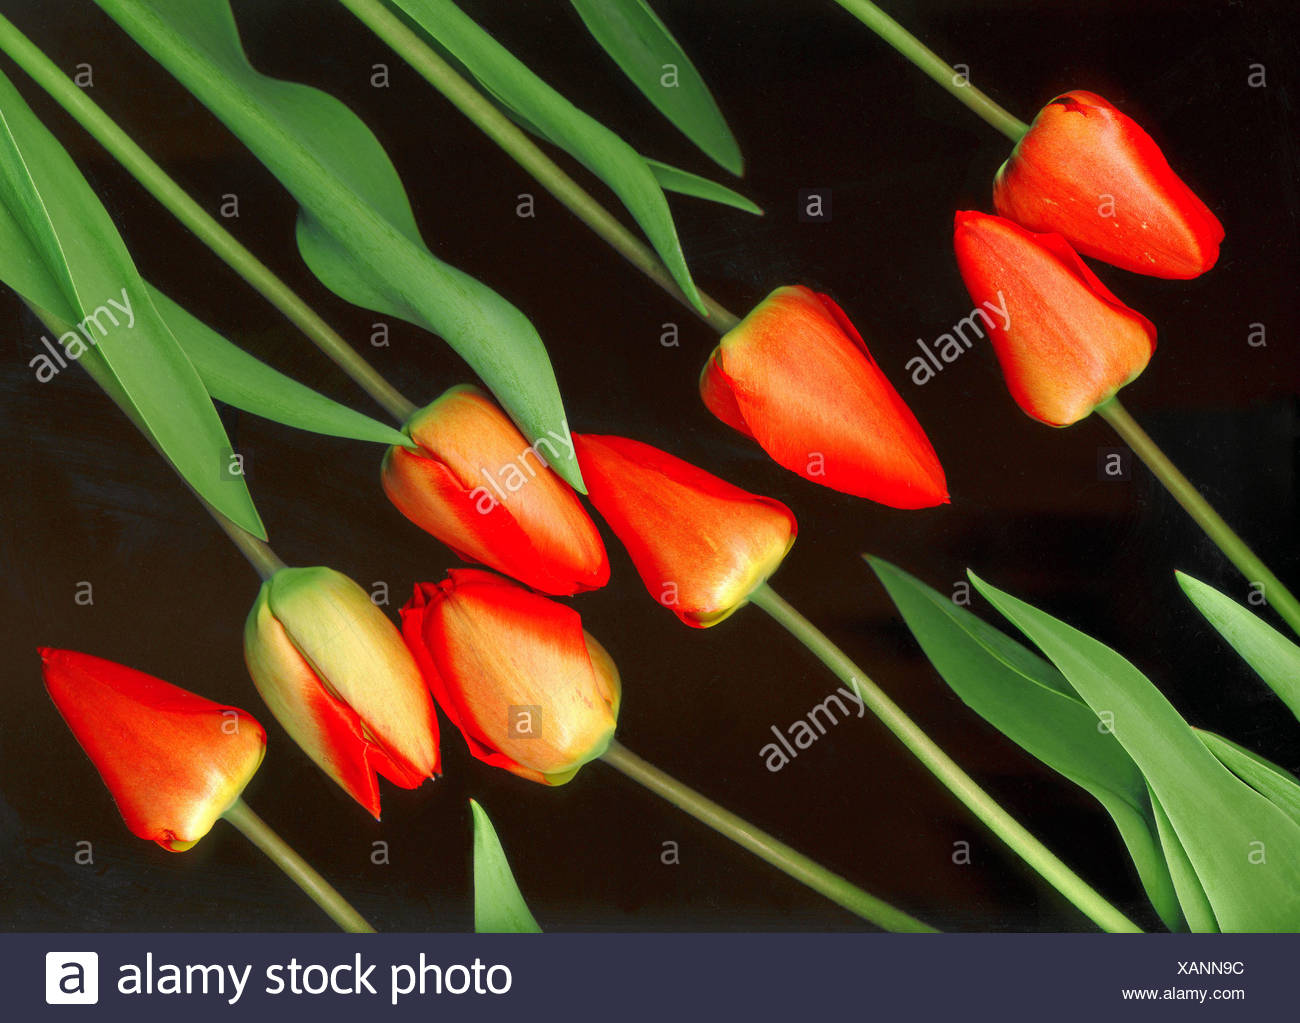 Red Tulips Symbolism Stock Photos Red Tulips Symbolism Stock